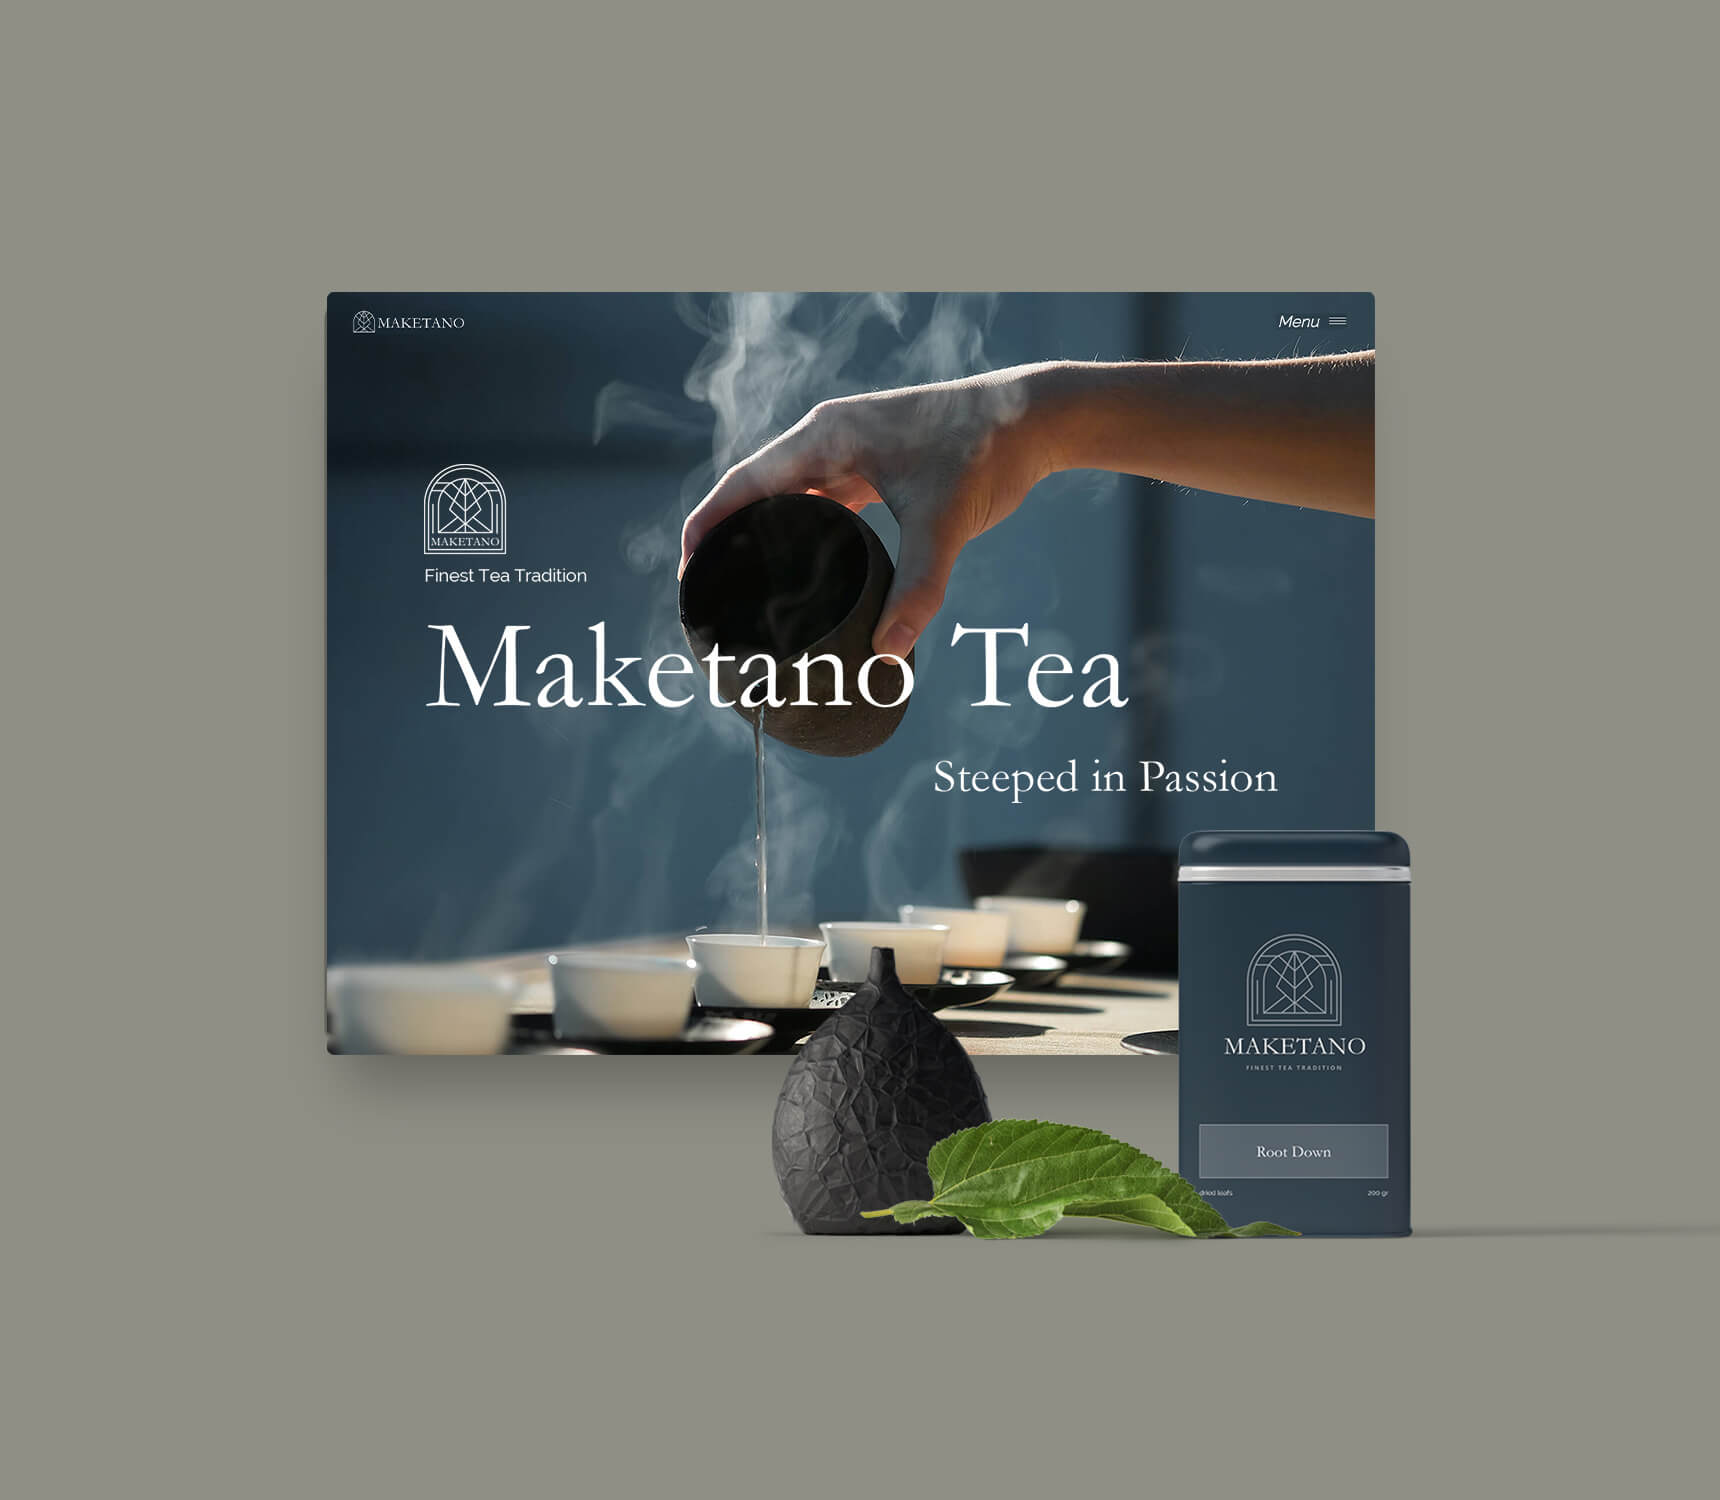 Website Design with tea can in front